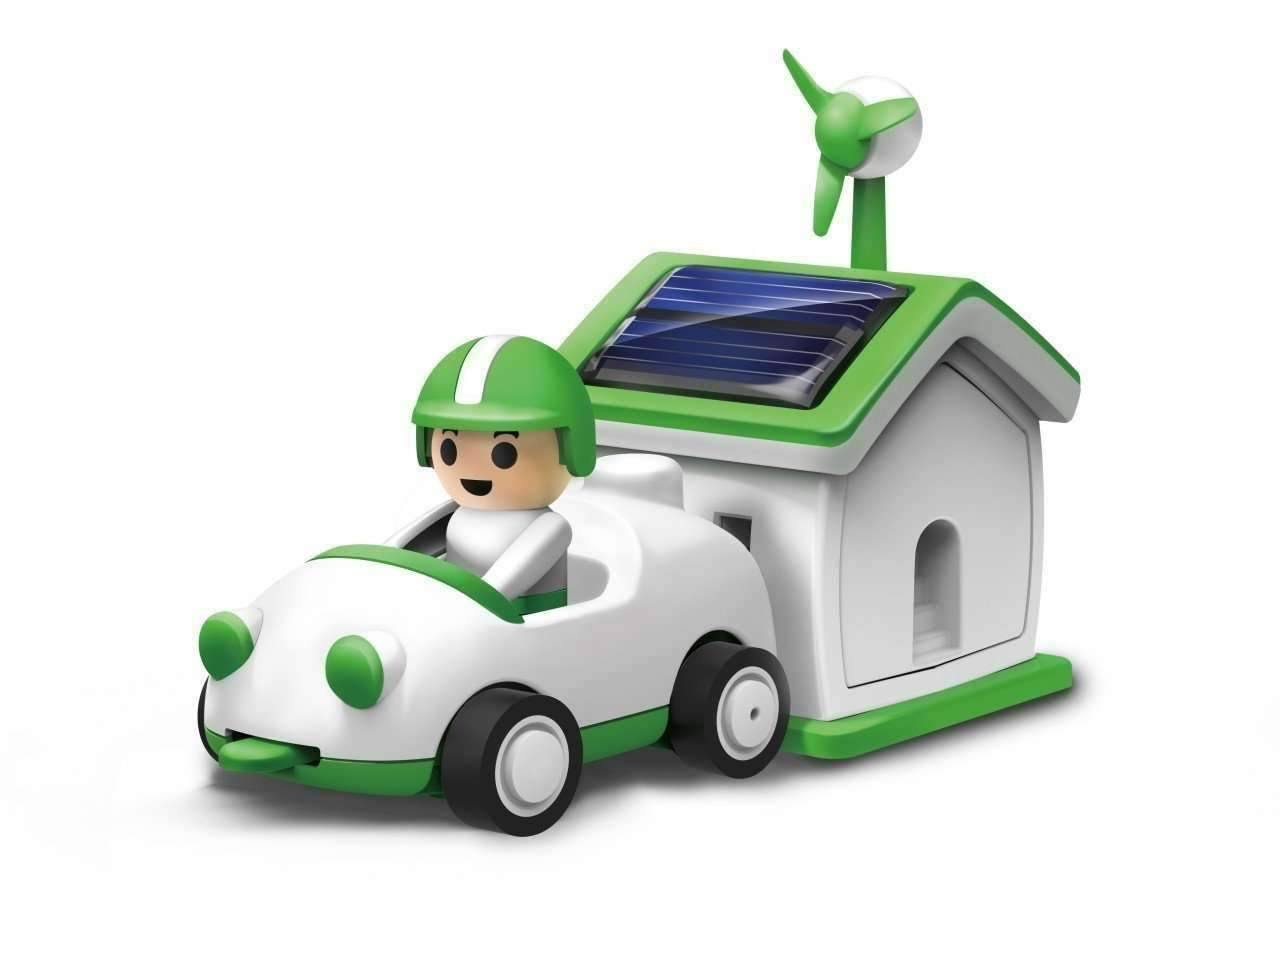 Owi Green Life Plug in House and Car